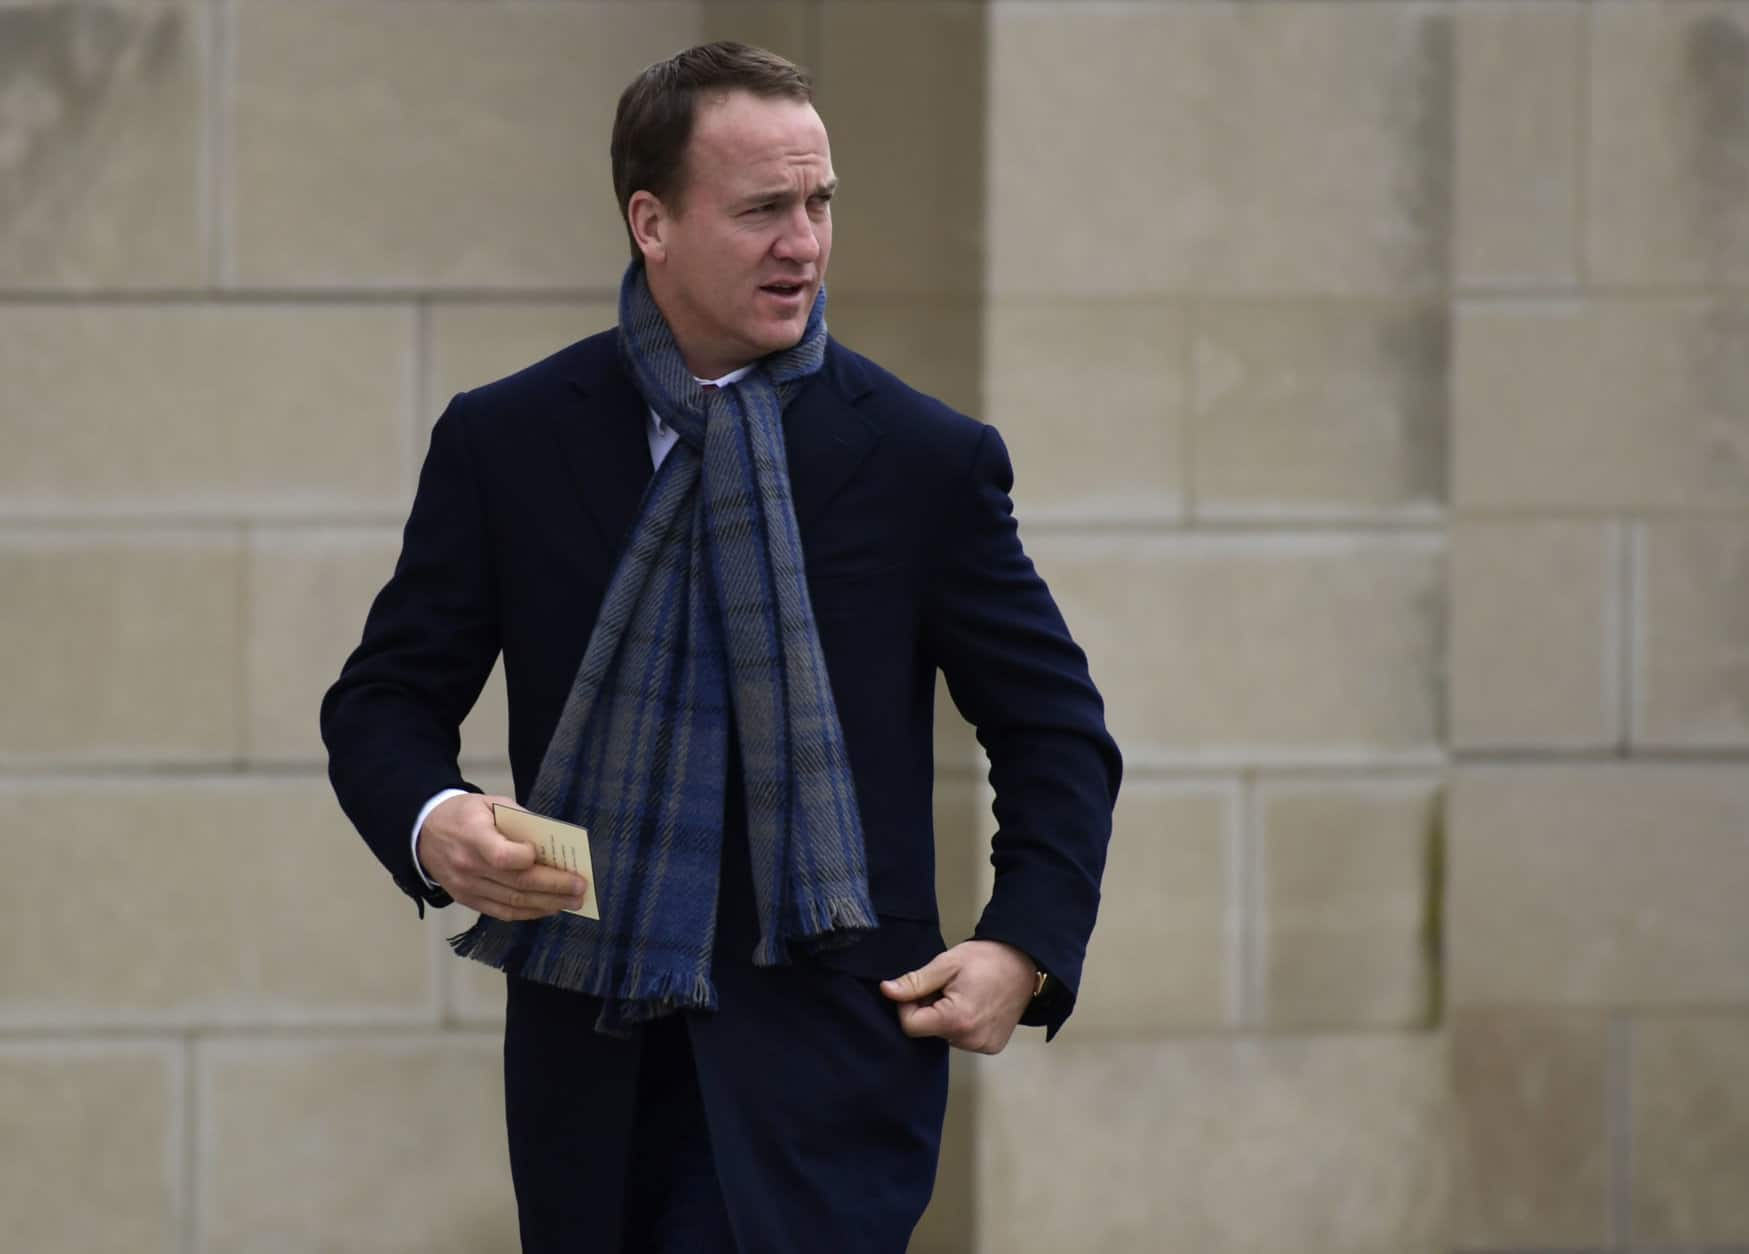 Former NFL quarterback Peyton Manning arrives for the State Funeral of former President George H.W. Bush at the National Cathedral in Washington, Wednesday, Dec. 5, 2018. (AP Photo/Susan Walsh)